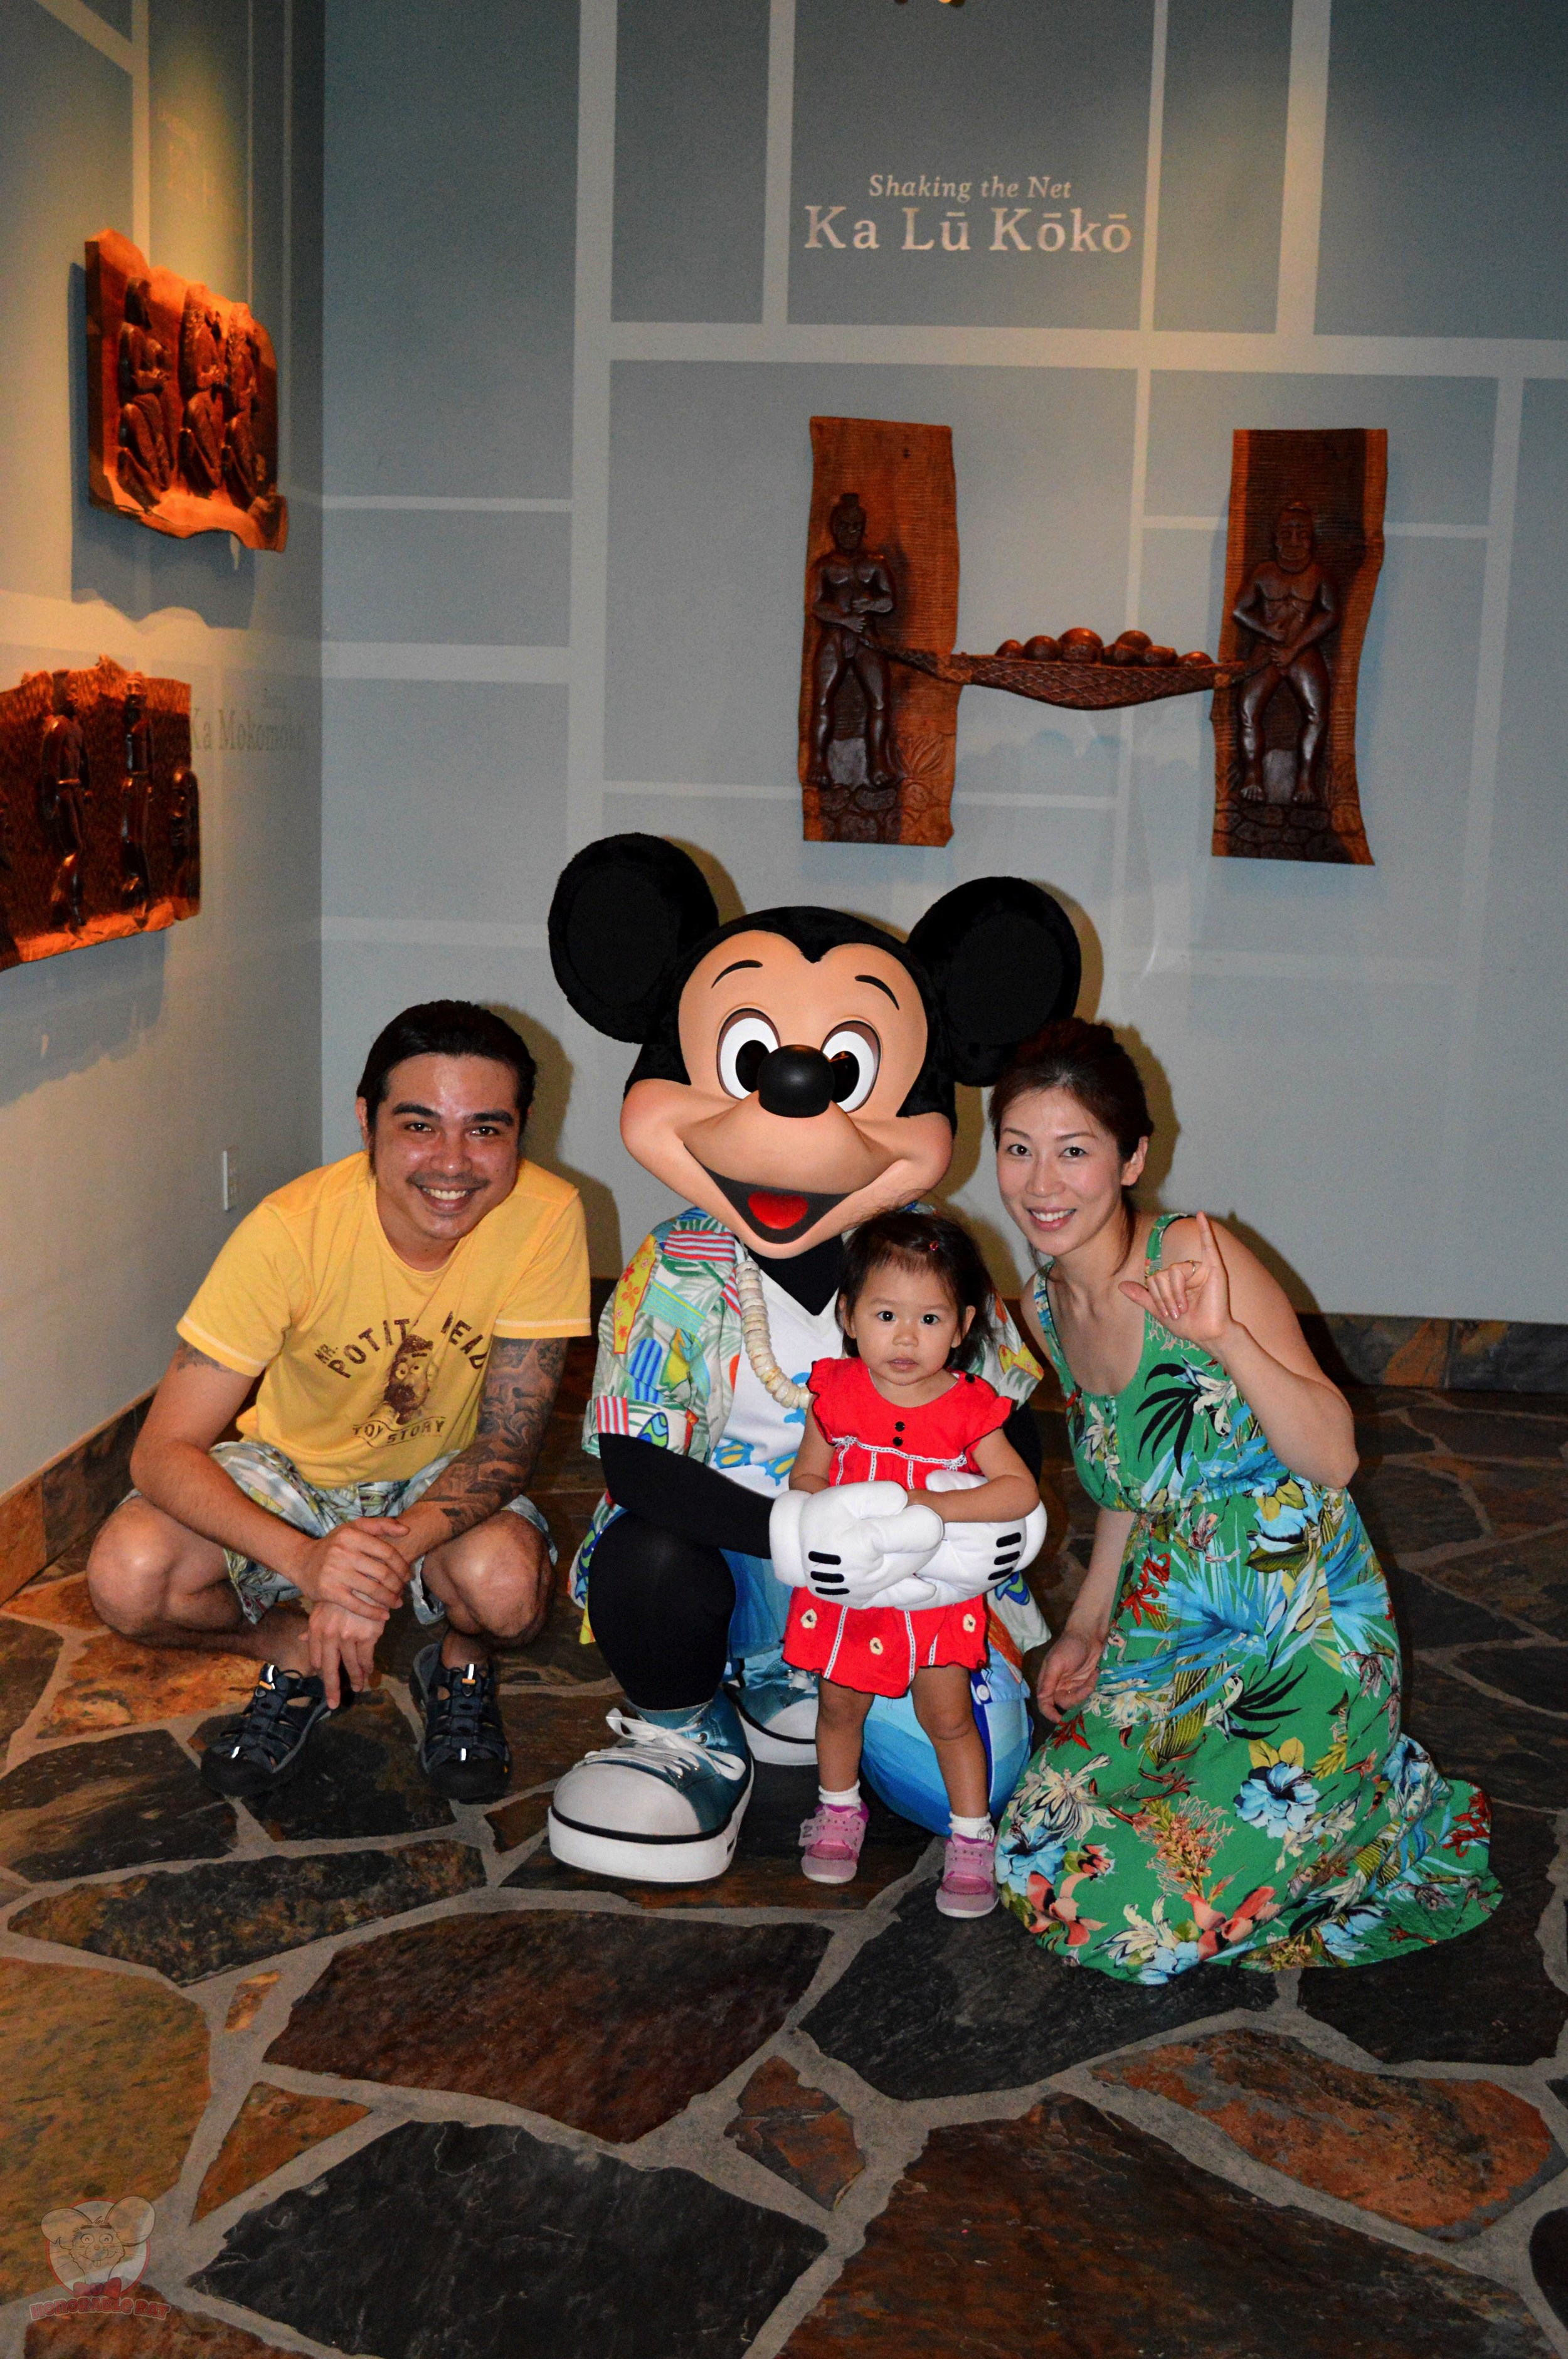 Before heading to our table, we took a family picture with Mickey